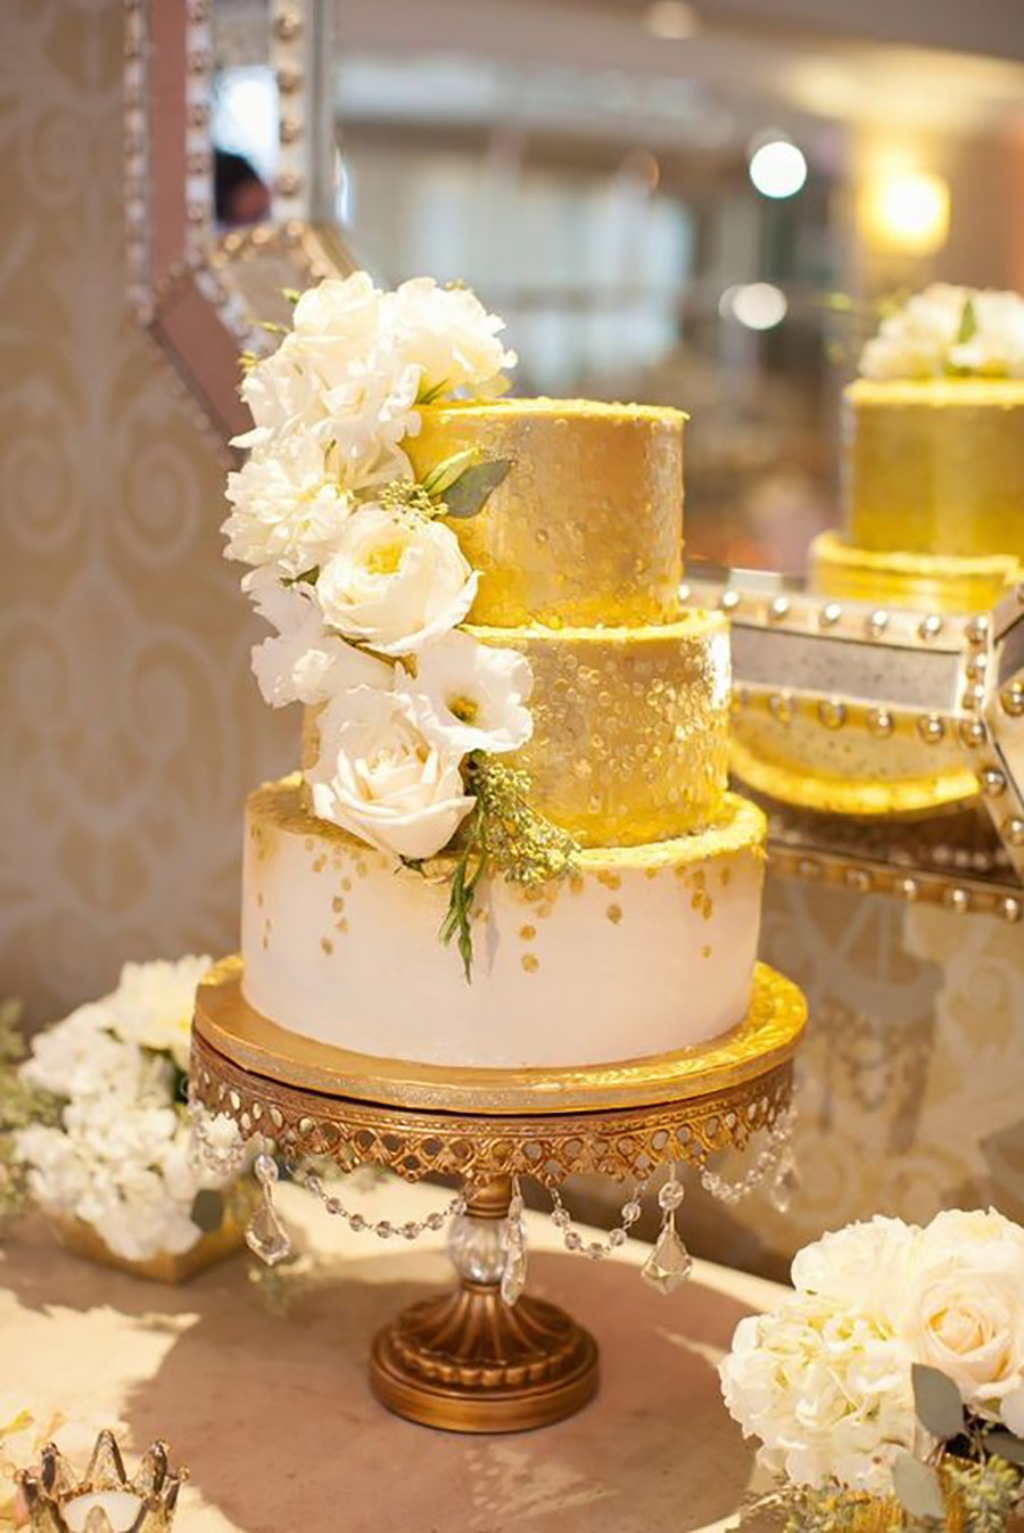 Leave a little sparkle... Gold Sparkle Wedding Cake!